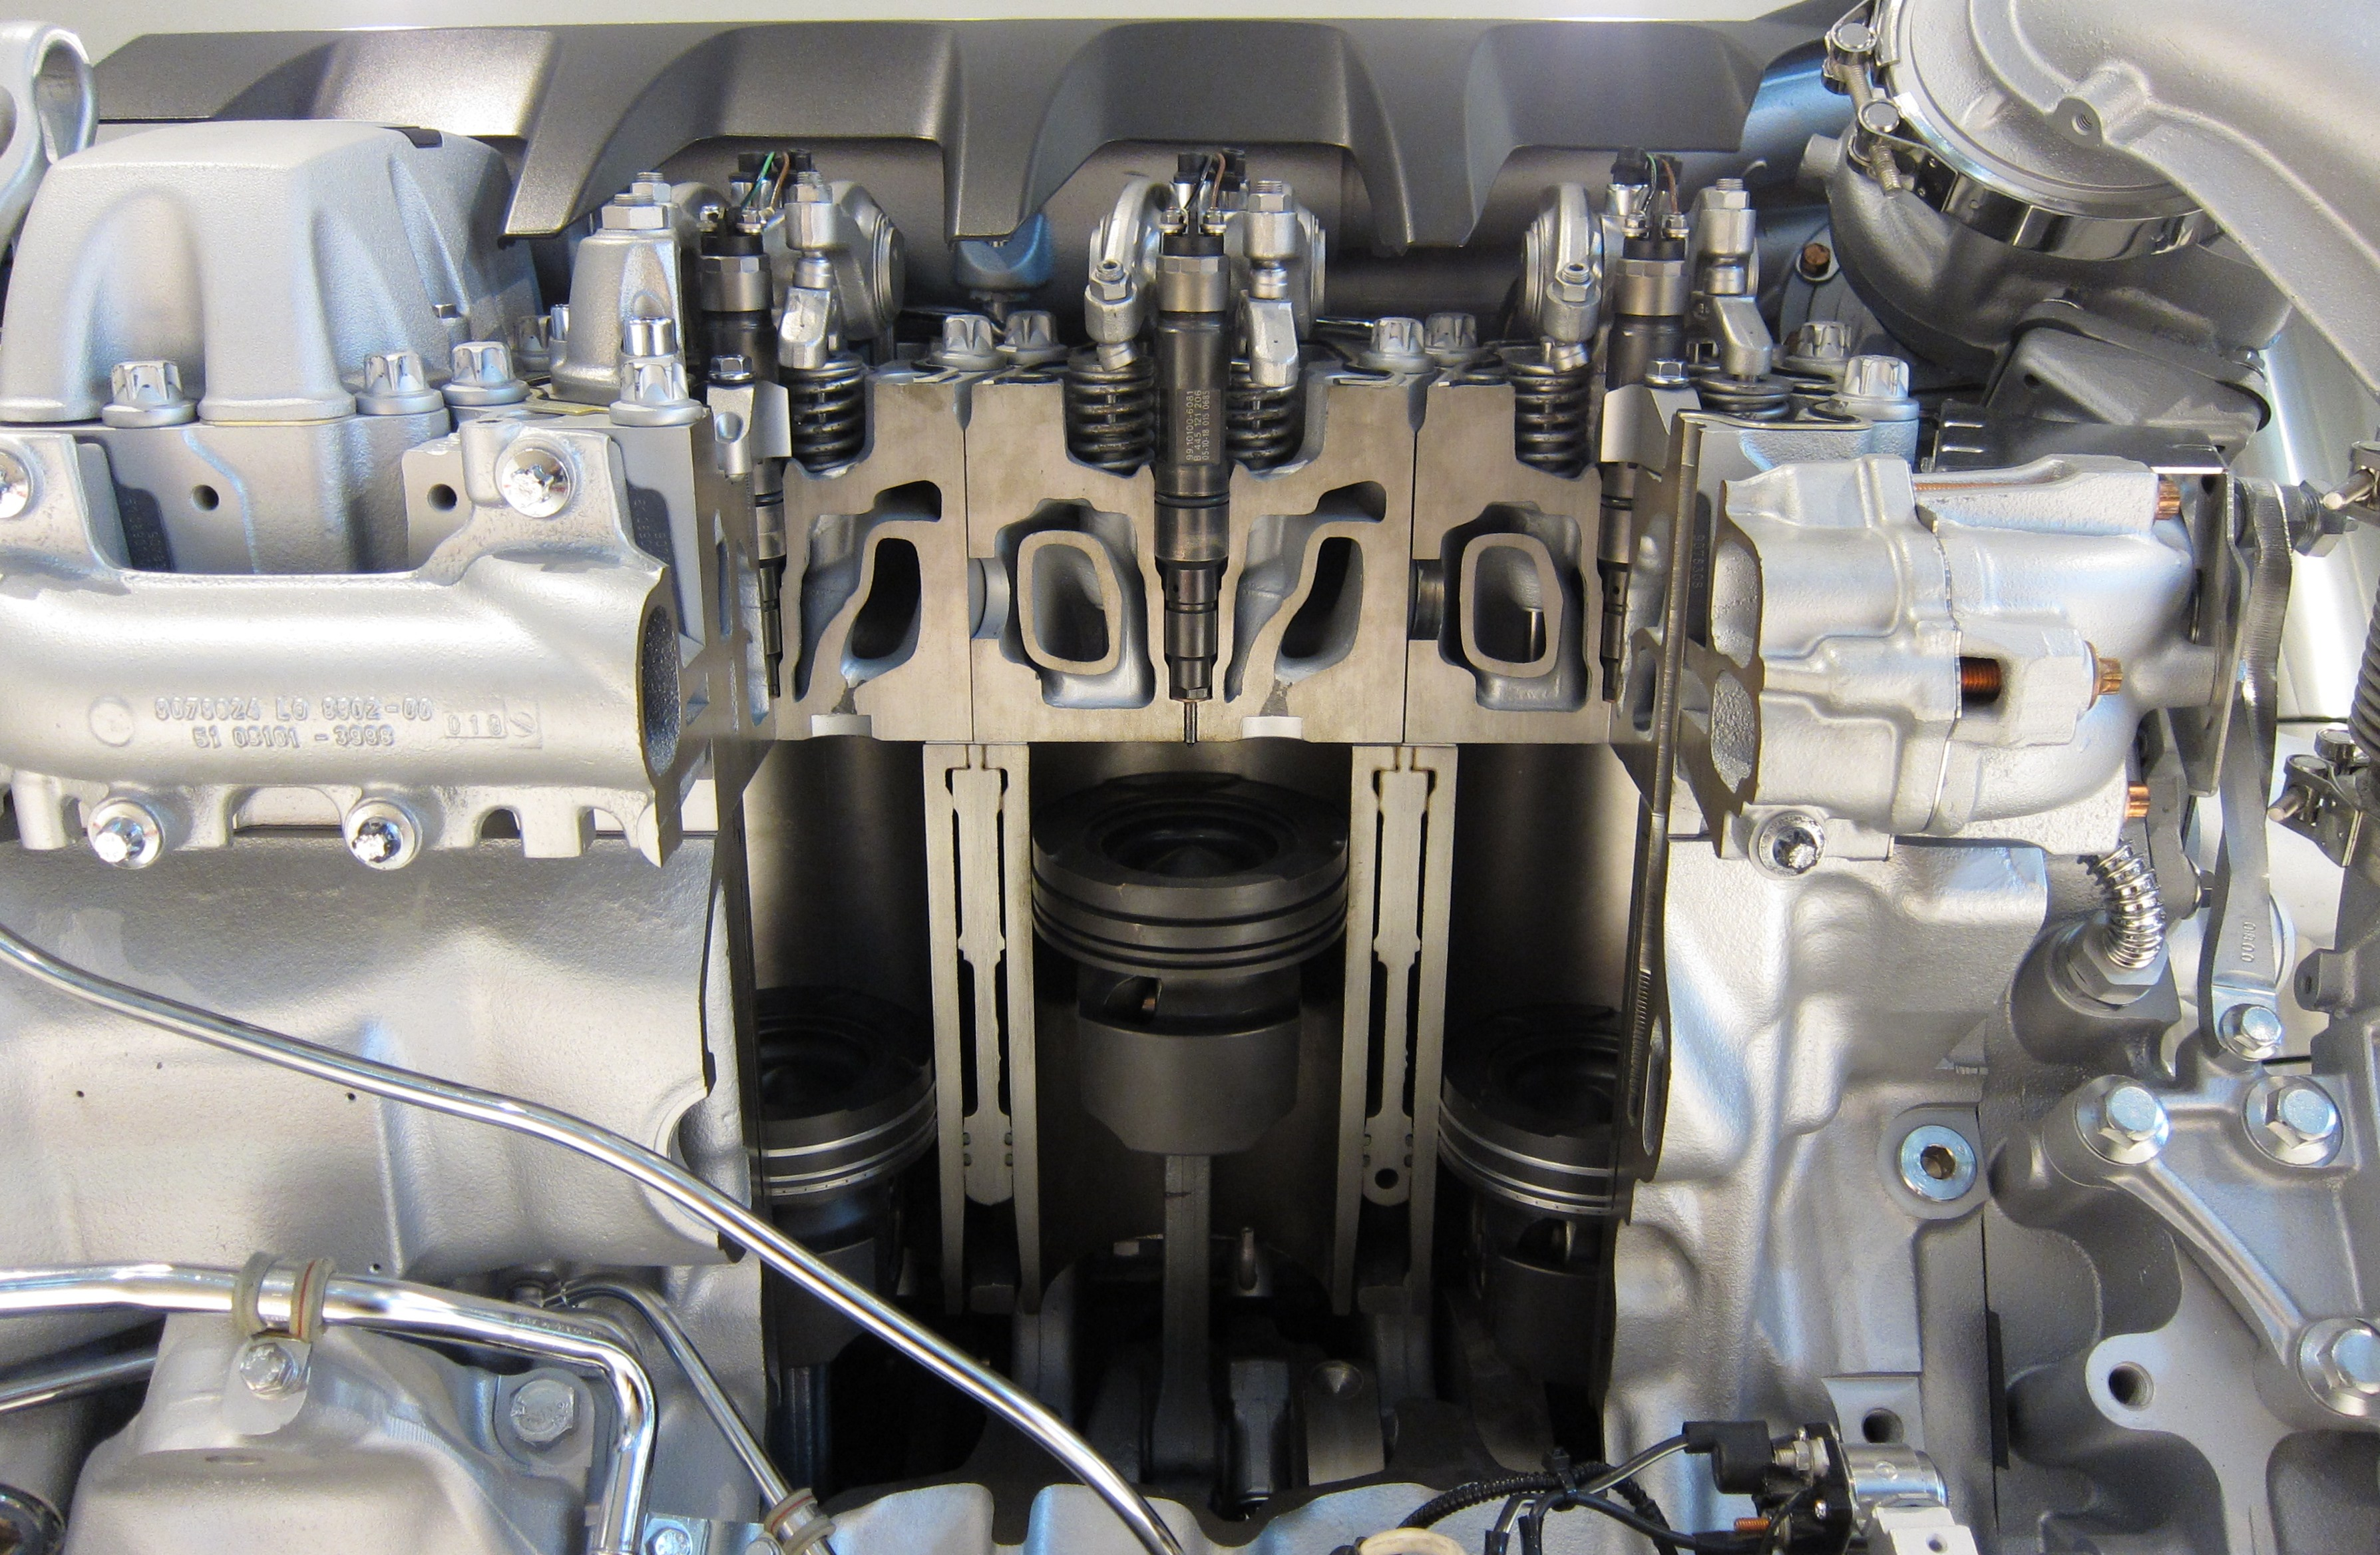 bmw mini cooper wiring diagram commodore vl common rail fuel injection diagnosis, five tips to consider - island diesel